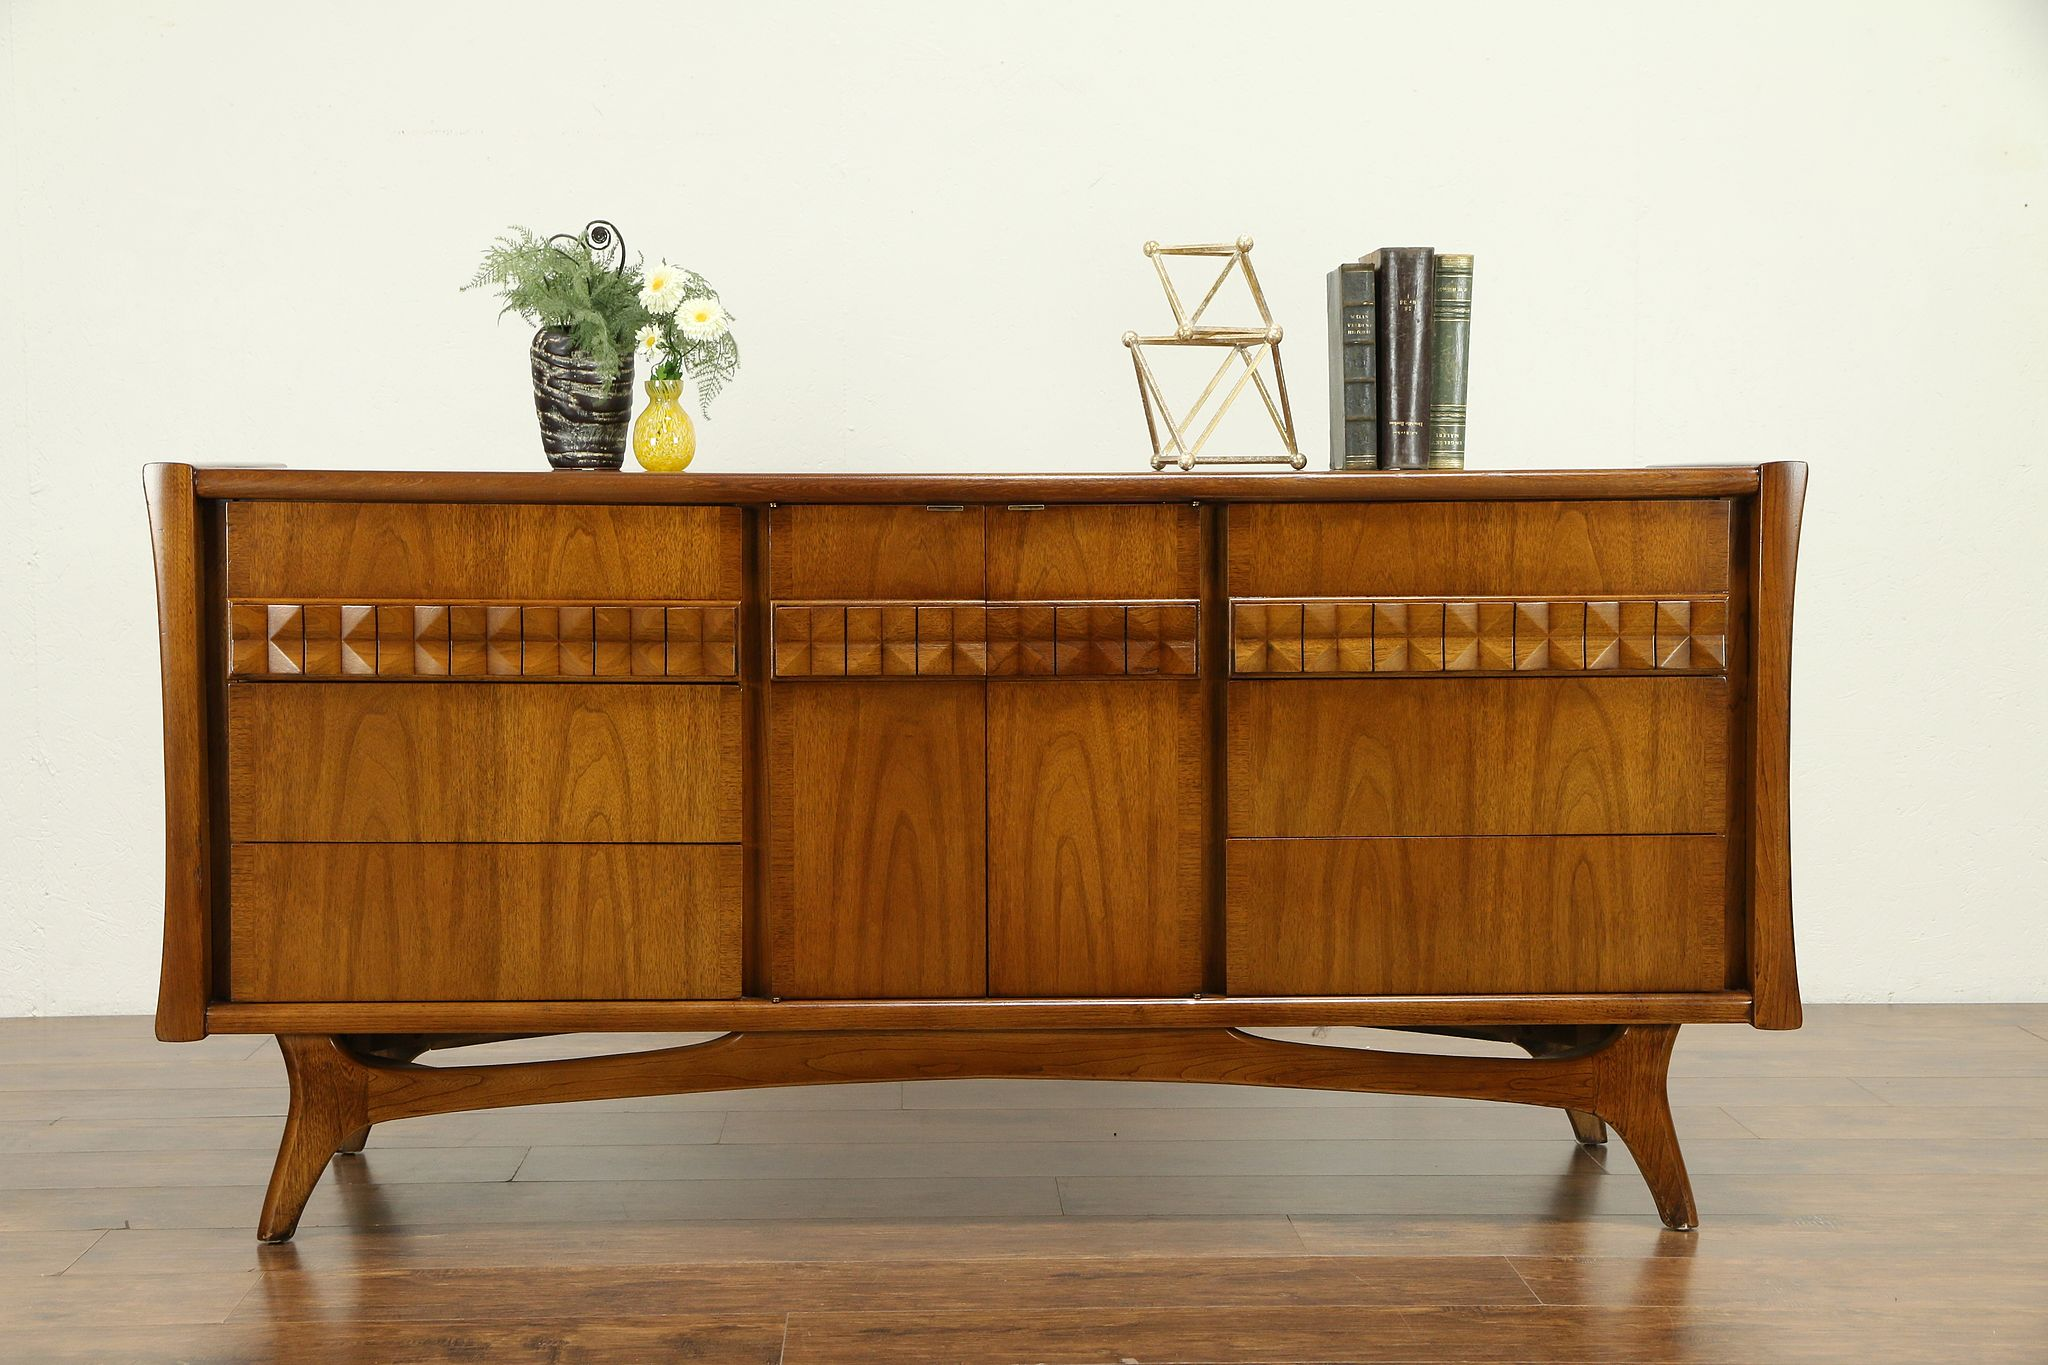 Picture of: Sold Midcentury Modern 1960 Vintage Credenza Sideboard Or Server Tv Console 30812 Harp Gallery Antiques Furniture